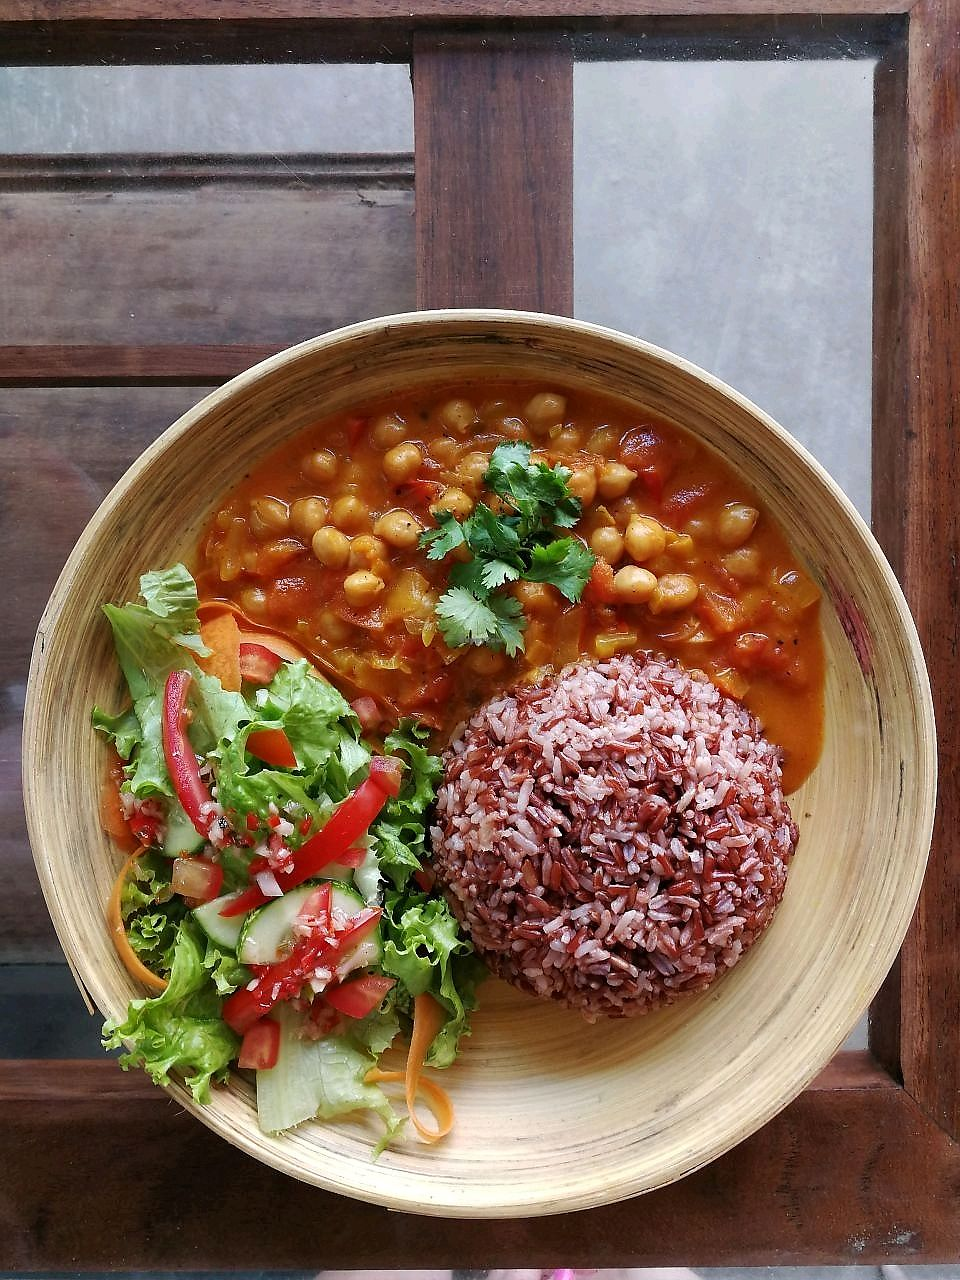 """Photo of The Fisherman Vegan Restaurant   by <a href=""""/members/profile/lulu1"""">lulu1</a> <br/>curry with brown rice <br/> April 22, 2018  - <a href='/contact/abuse/image/113002/389272'>Report</a>"""